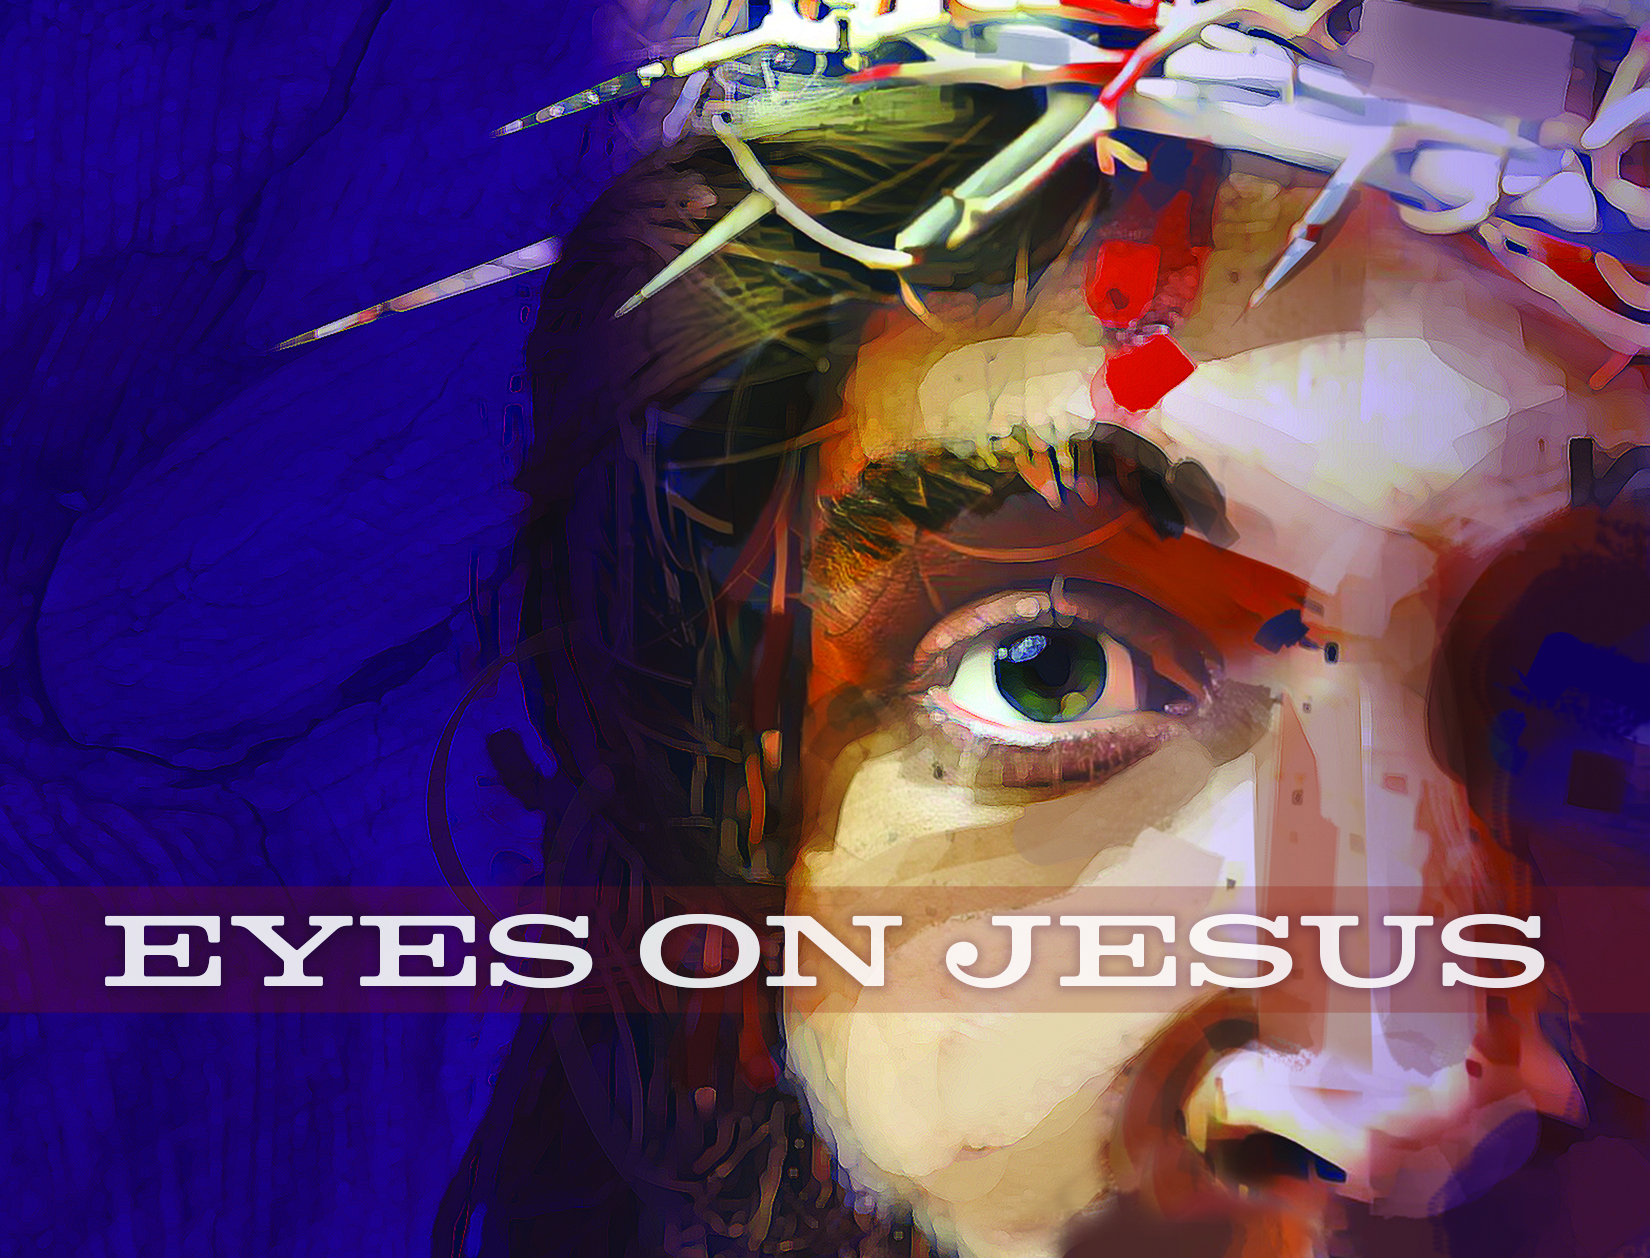 https://s3.amazonaws.com/media.cph.org/product/155249/Eyes.on.Jesus_logo_web.jpg